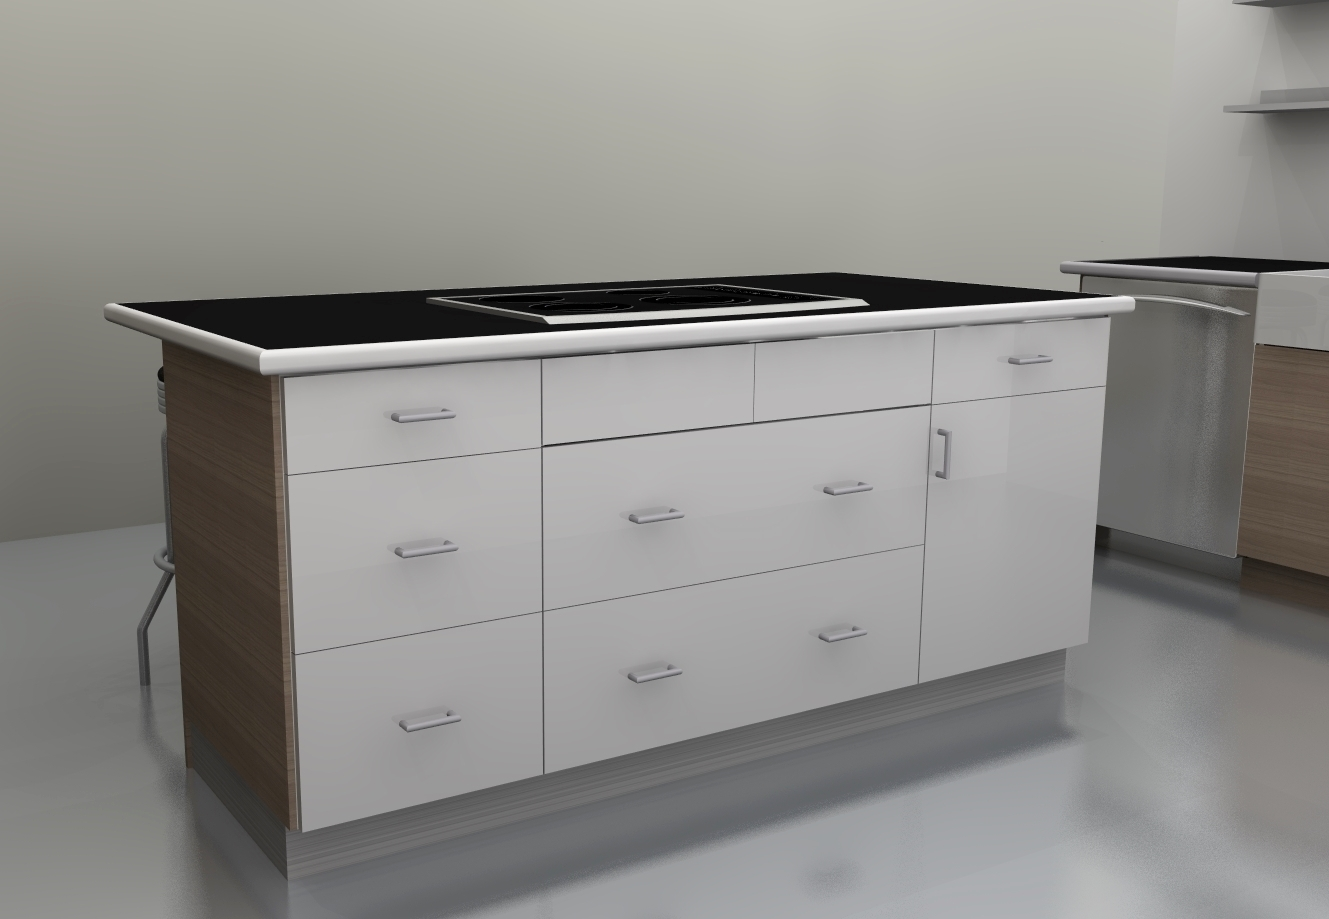 Ikea Mandal Chest Of Drawers ~ The cooktop is now centered in the island and the counter overhang is